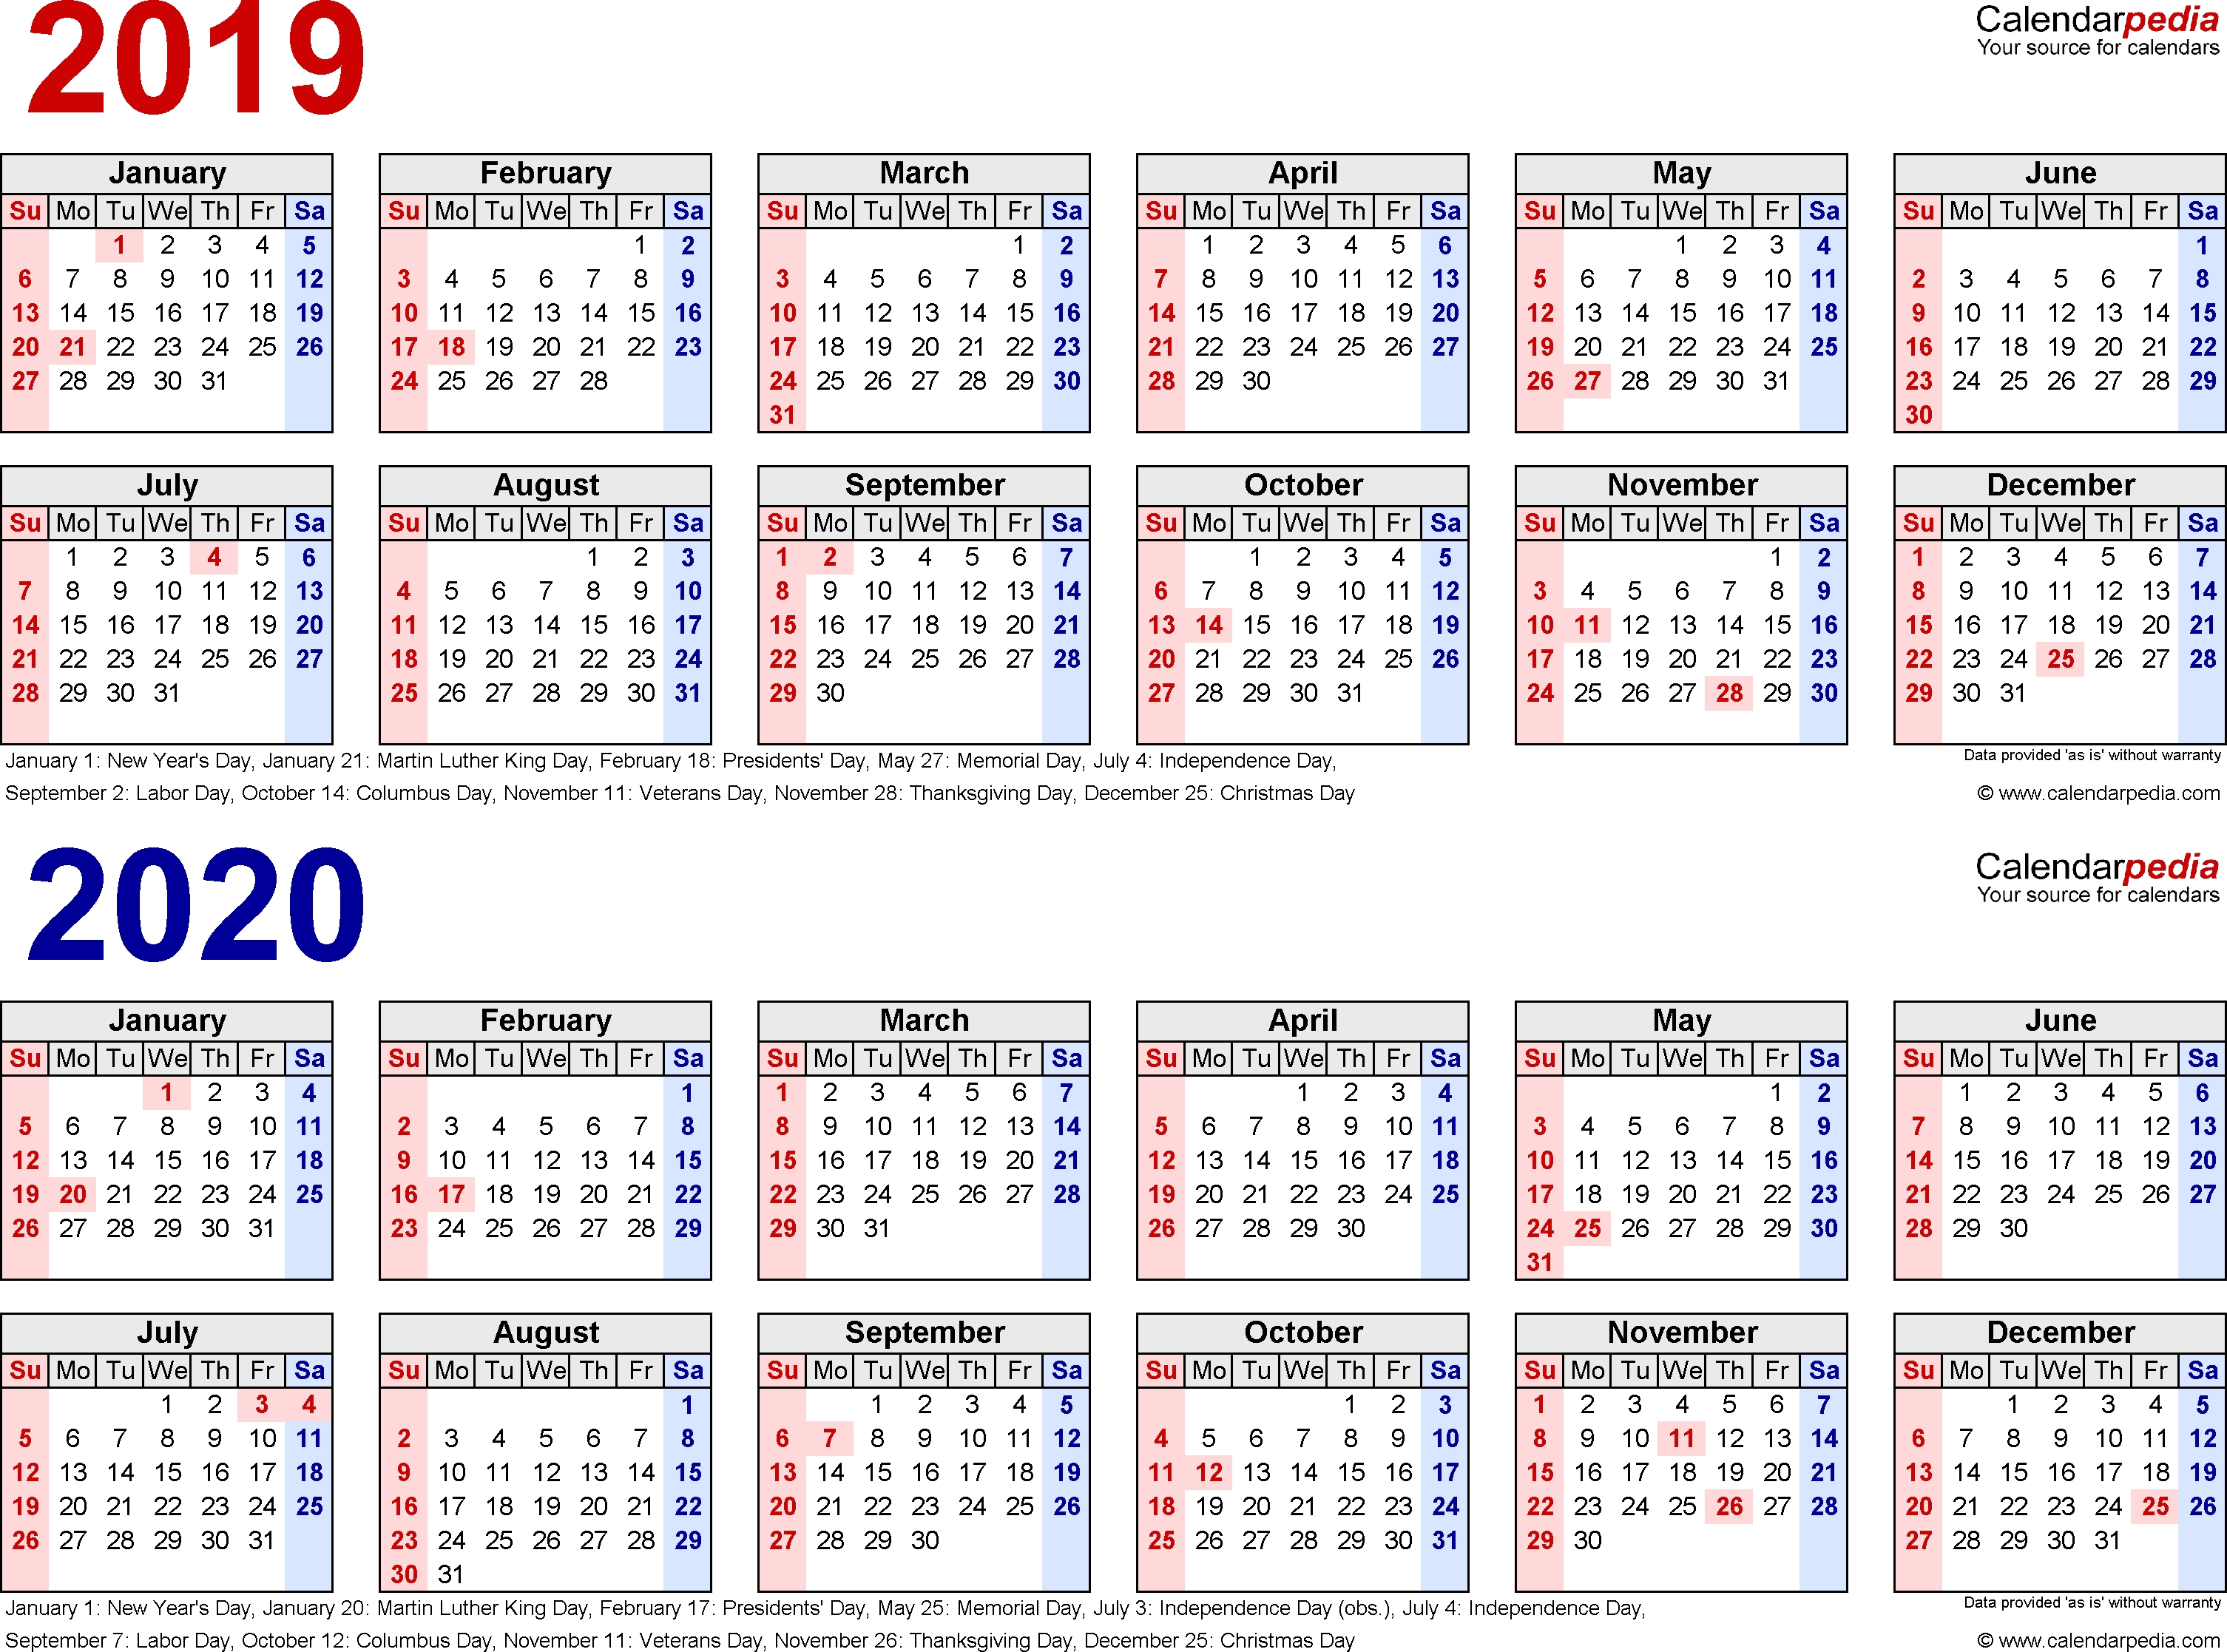 2019-2020 Calendar - Free Printable Two-Year Word Calendars pertaining to Print 2019/2020 Financial Year Calendar On One Page